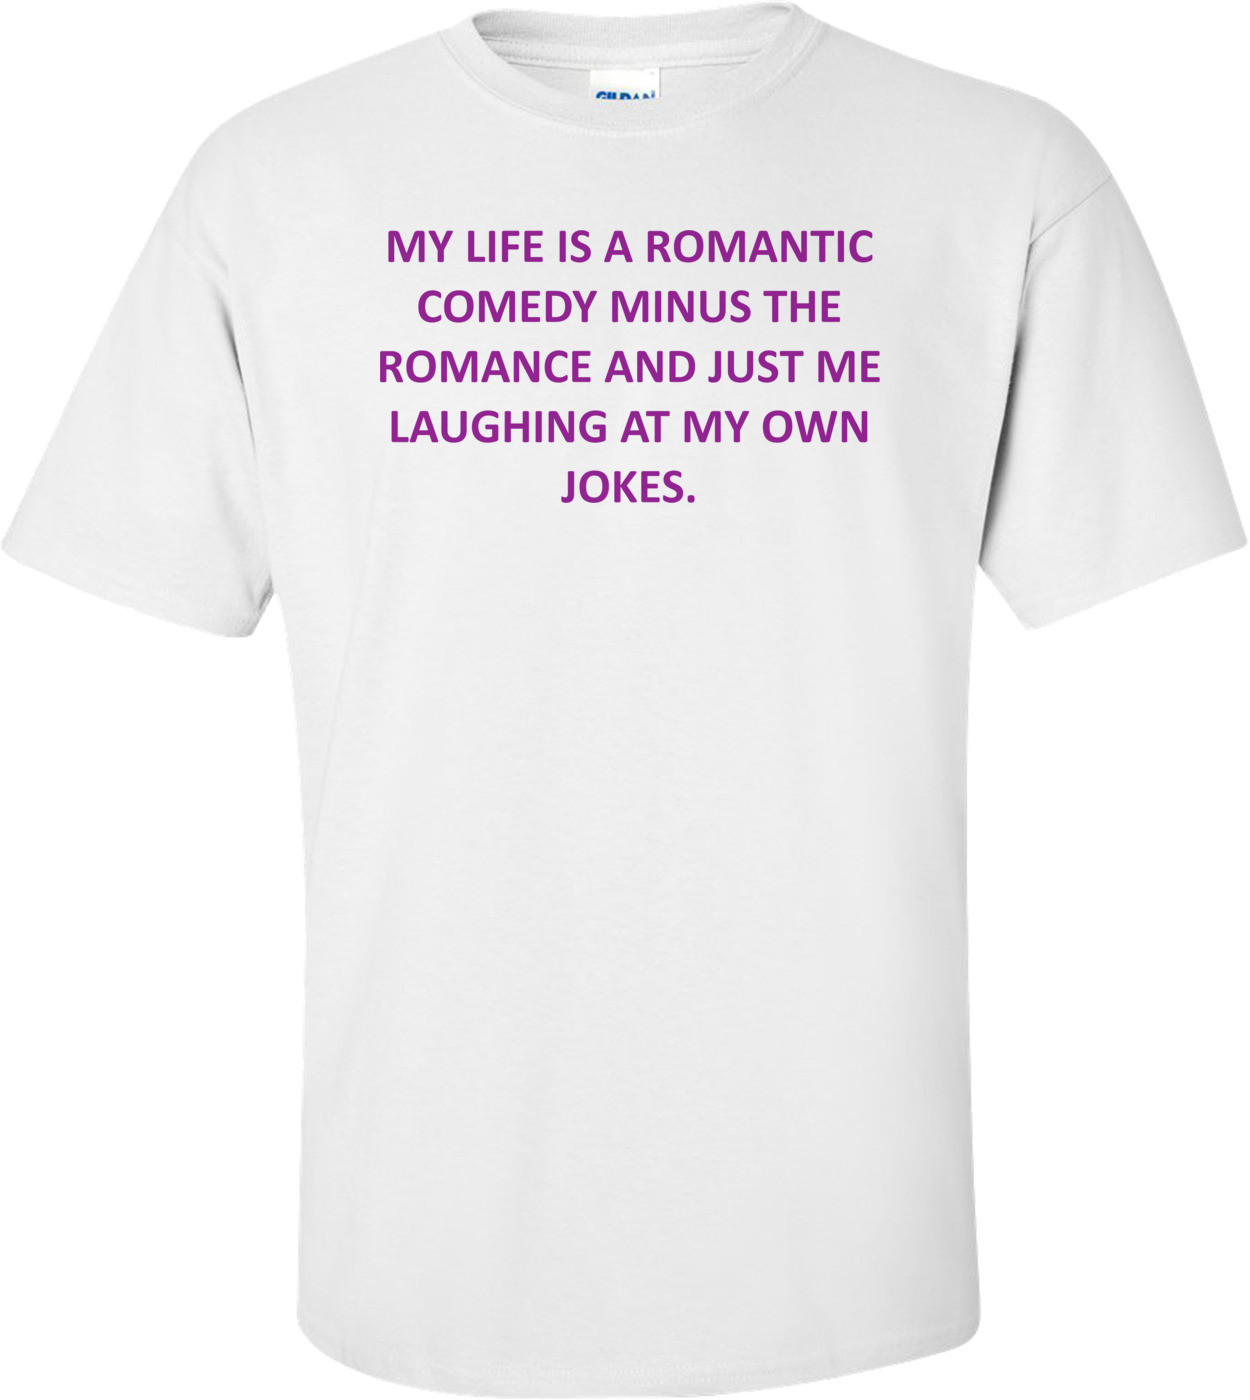 My Life Is A Romantic Comedy Minus The Romance And Just Me Laughing At My Own Jokes. Shirt